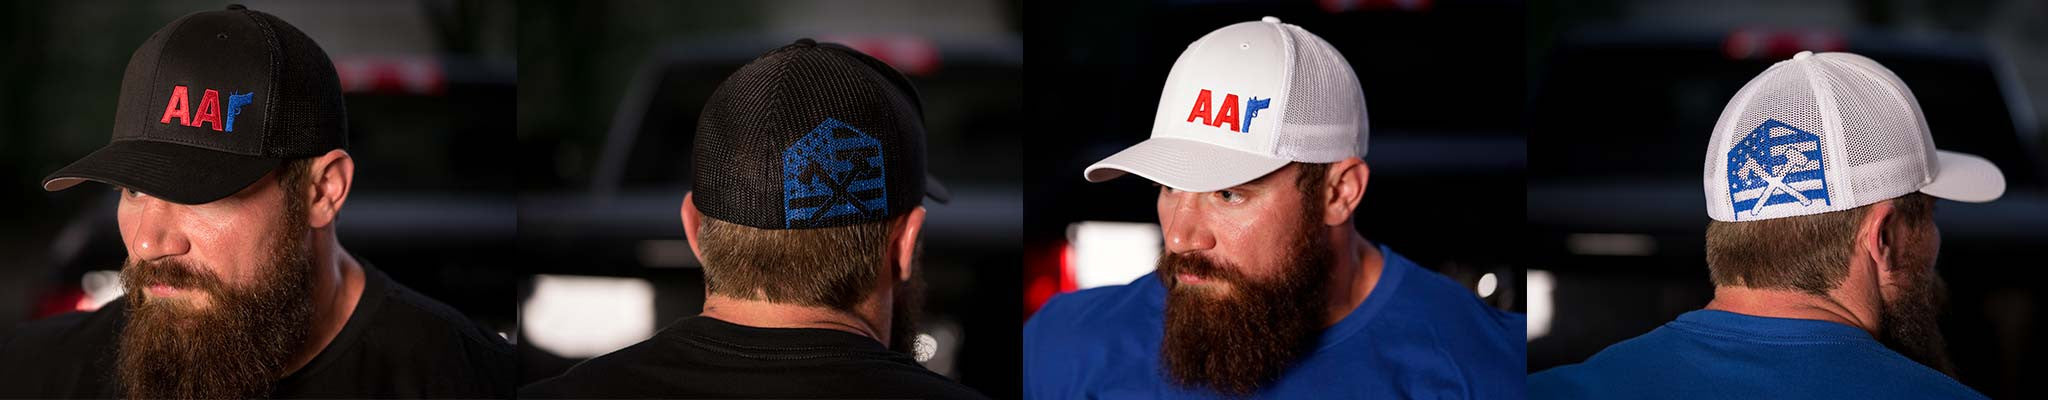 Red/Royal Mesh Hats